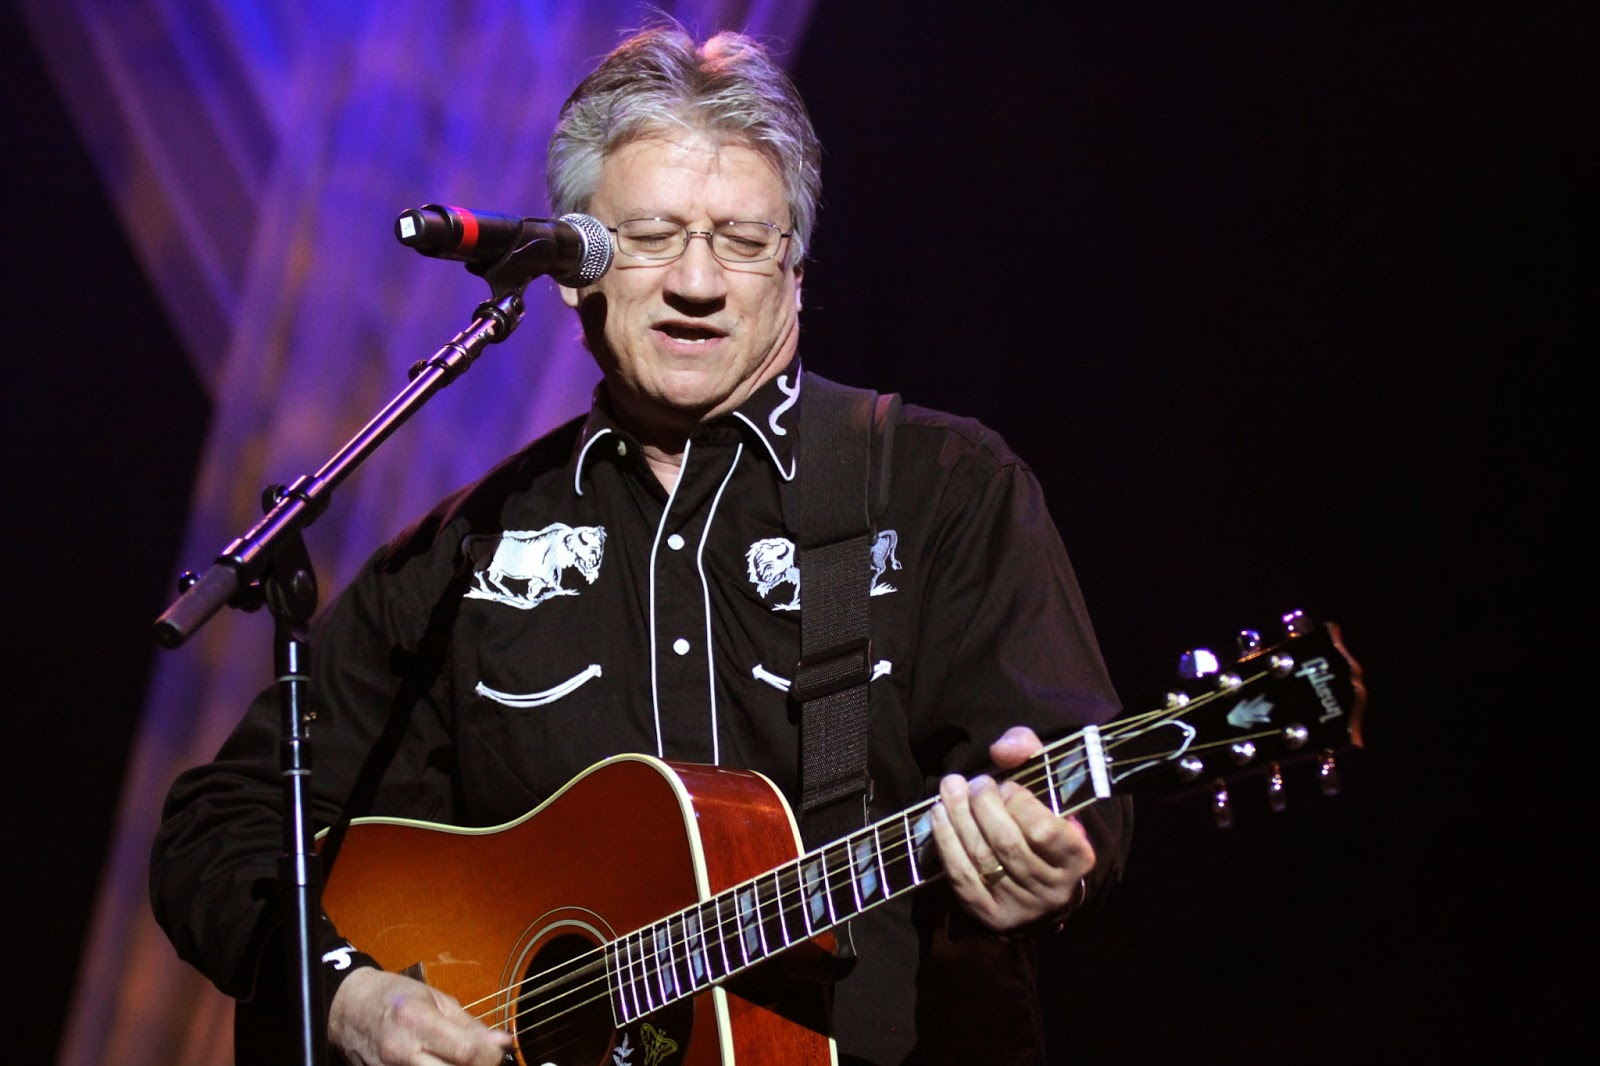 Richie Furay photo